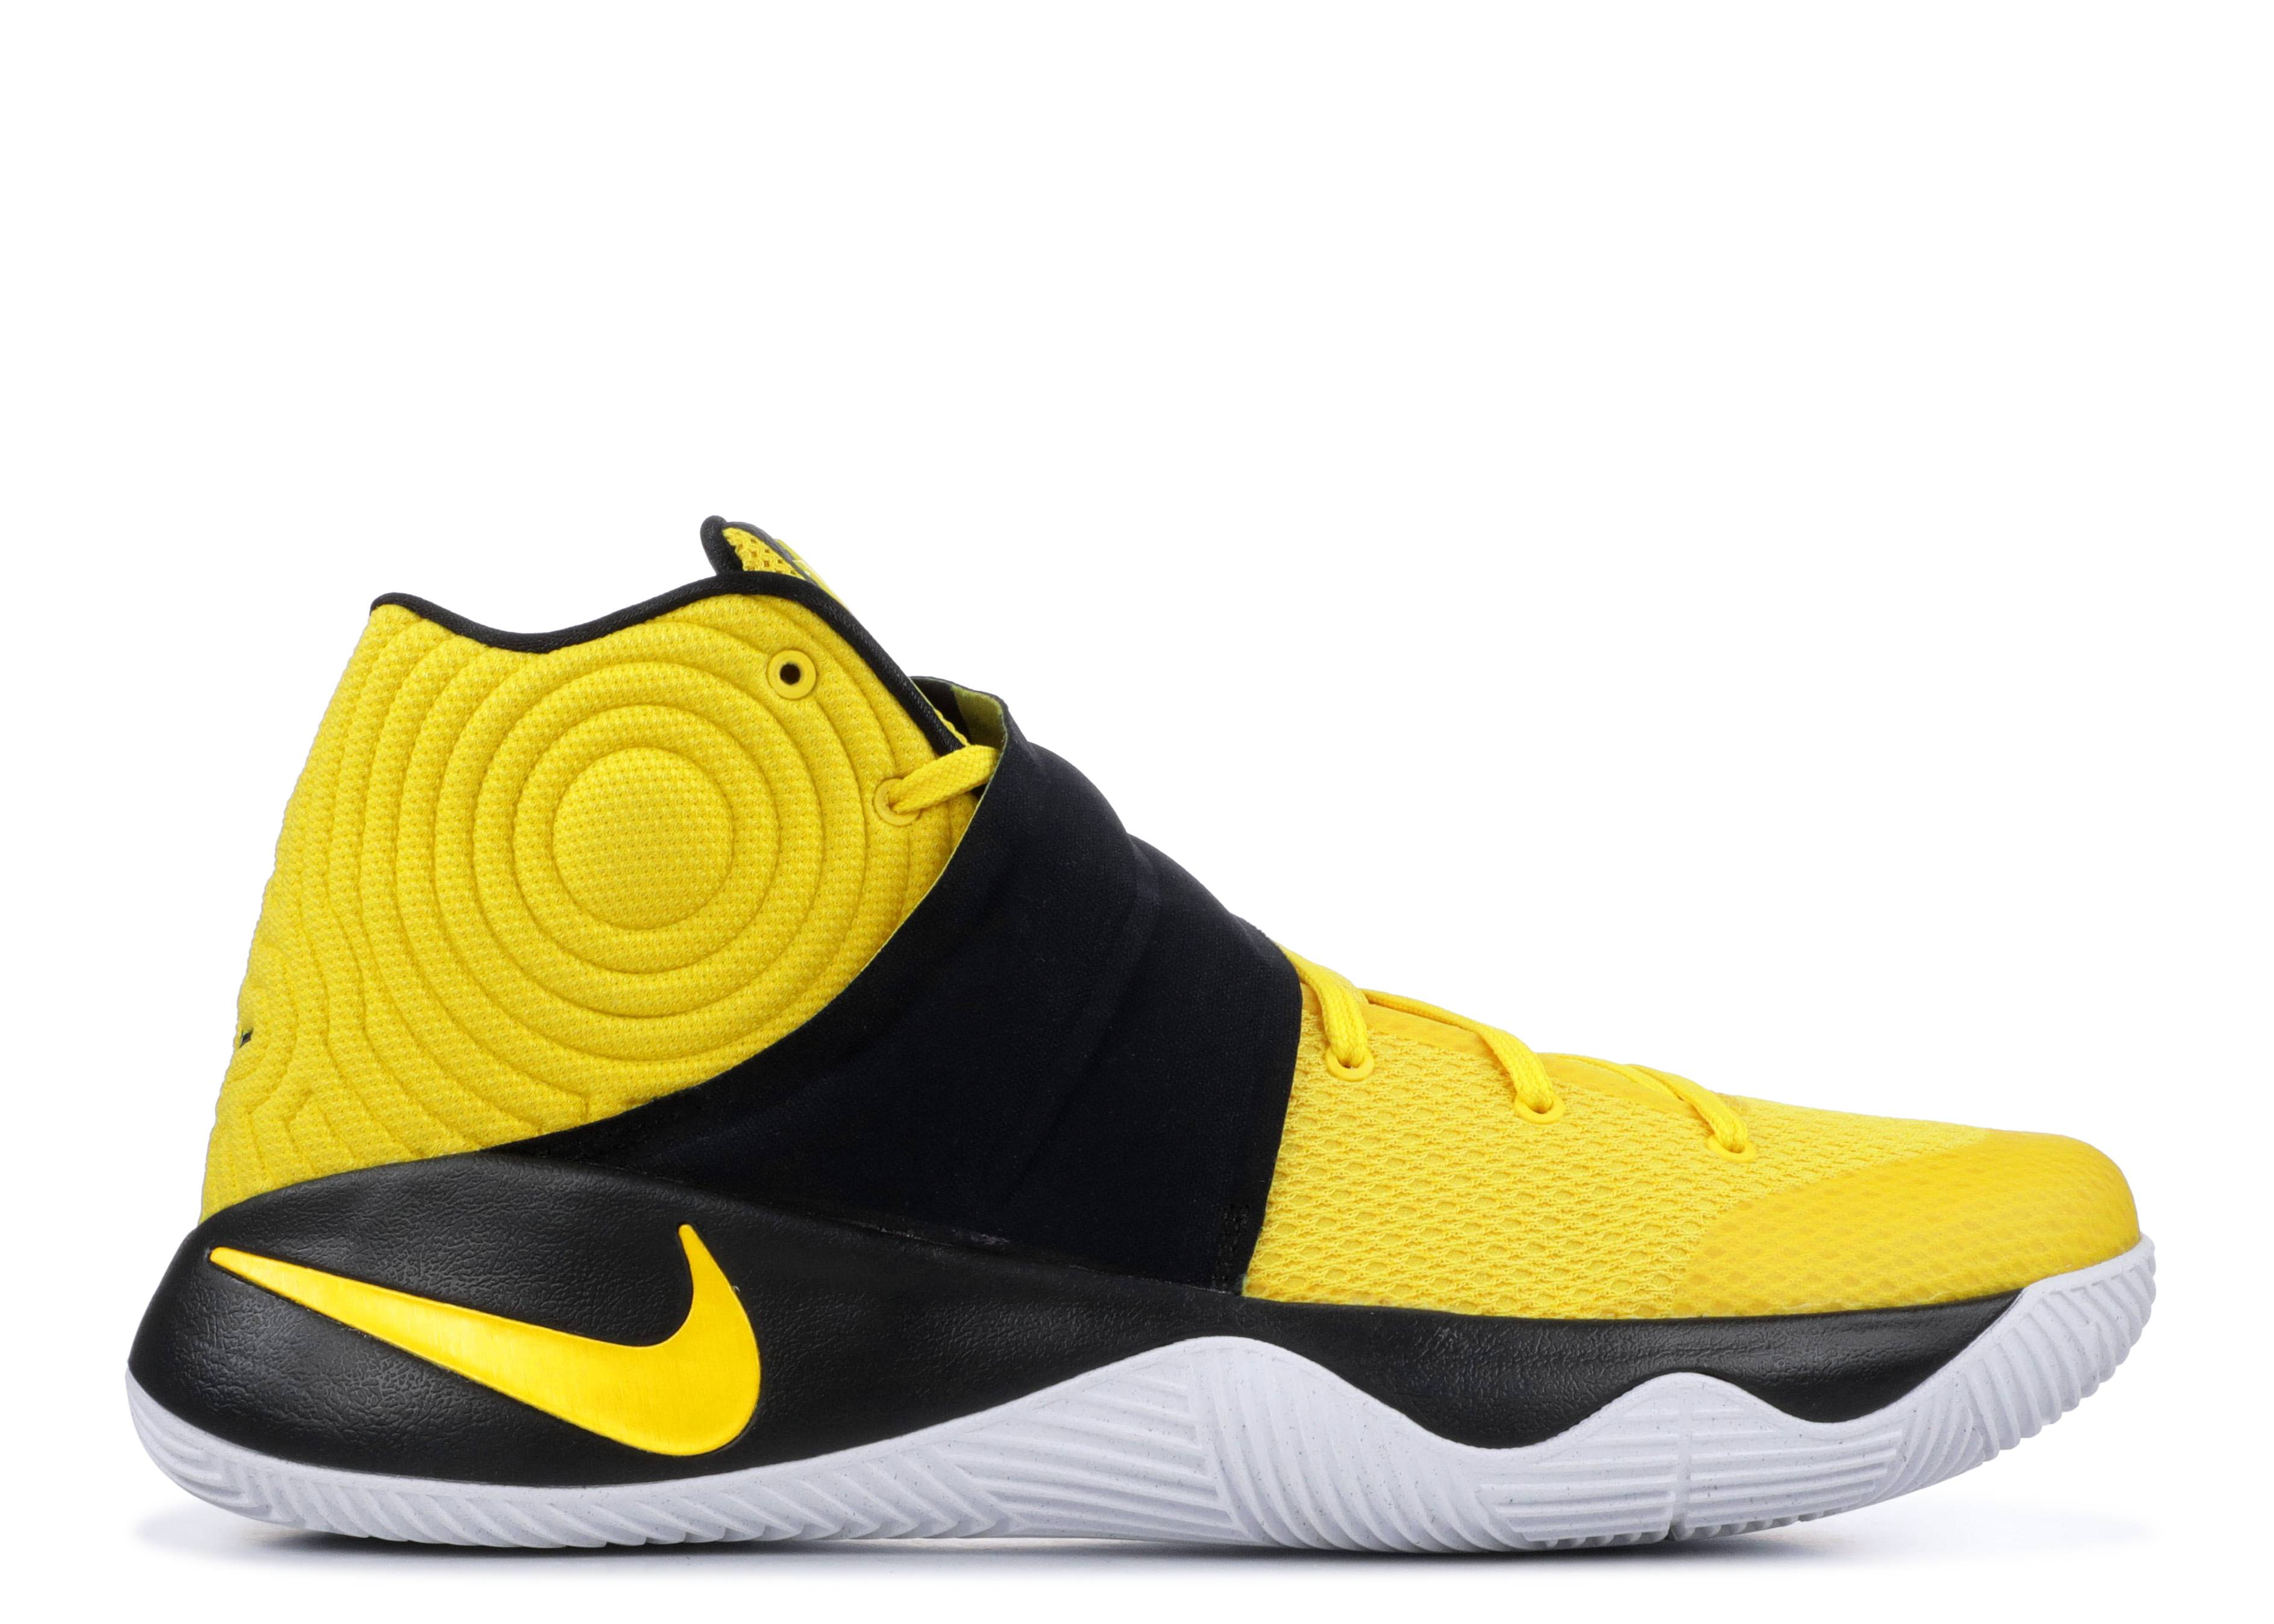 on sale 9f637 4f68a Kyrie 2 - Nike - 819583 701 - tour yellow black-white   Flight Club